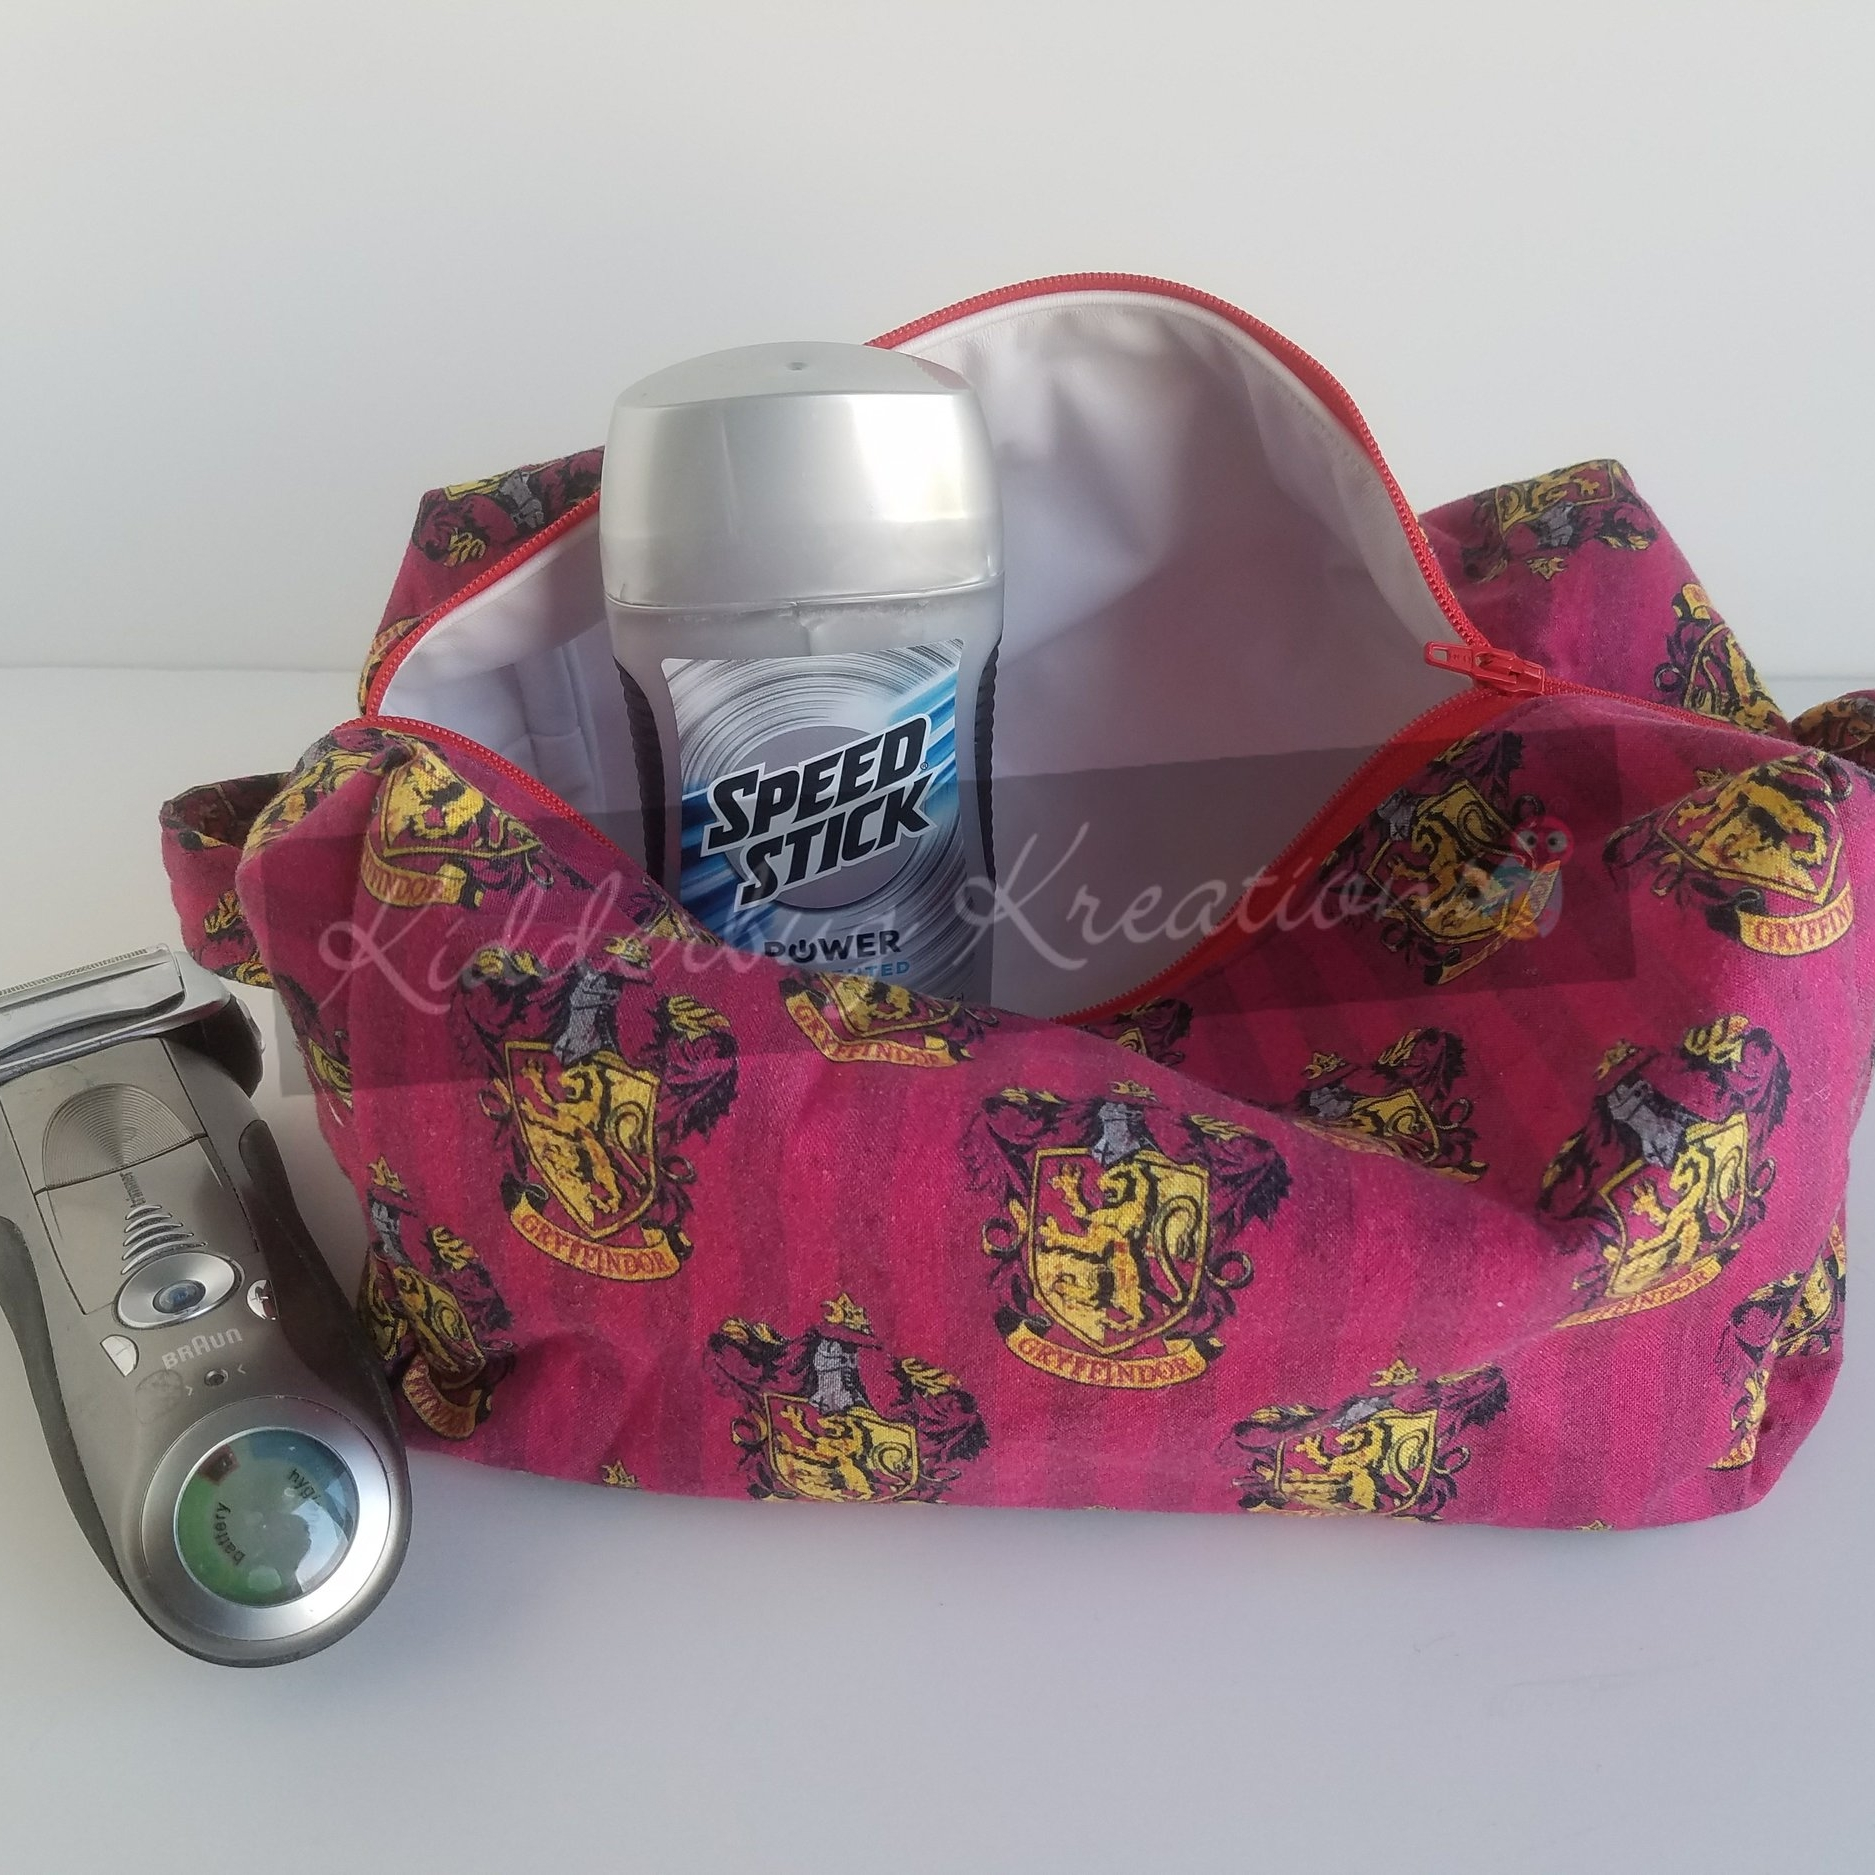 Harry Potter Gryffindor Fabric Dopp Bag - Even if you aren't traveling to the Ministry of Magic, you will love having a dopp bag with a waterproof lining for your toiletries the next time you travel. (Slytherin fabric available also)